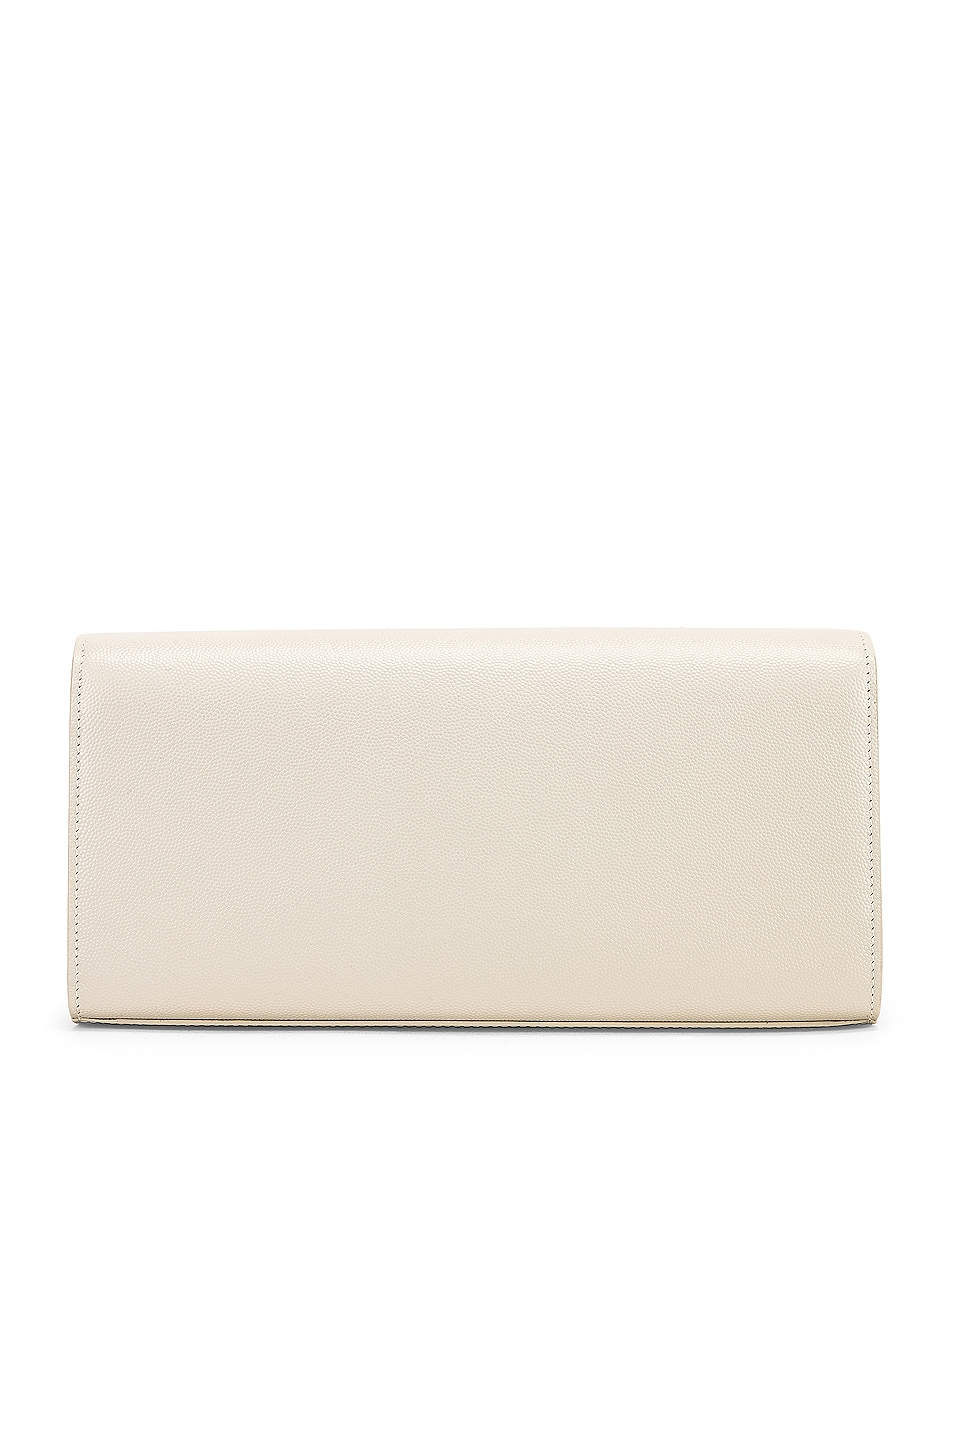 Image 3 of Saint Laurent Kate Clutch in Blanc Vintage